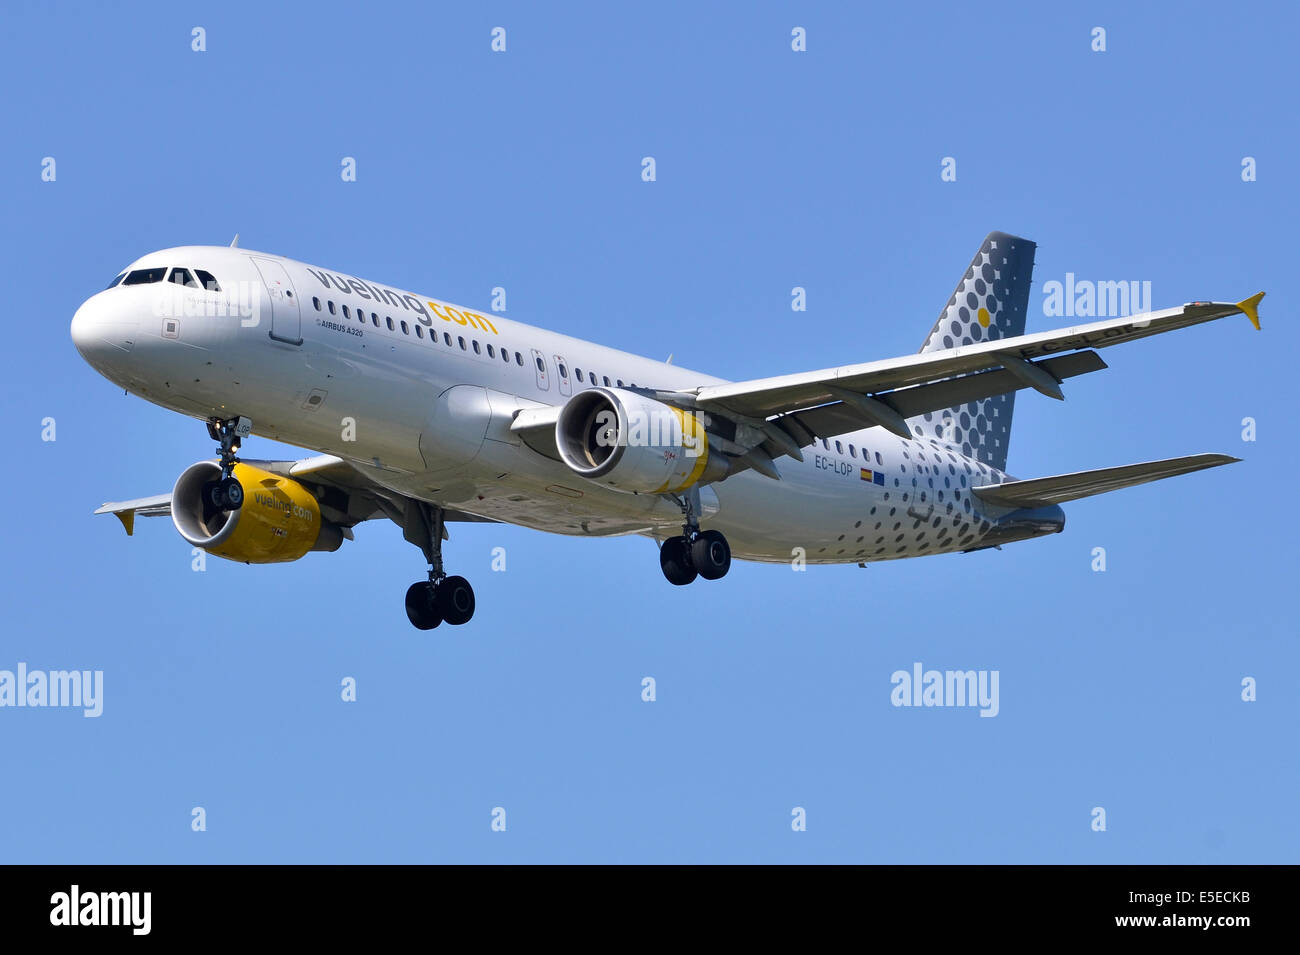 Airbus A320 operated by Vueling Airlines on approach for landing at London Heathrow Airport - Stock Image